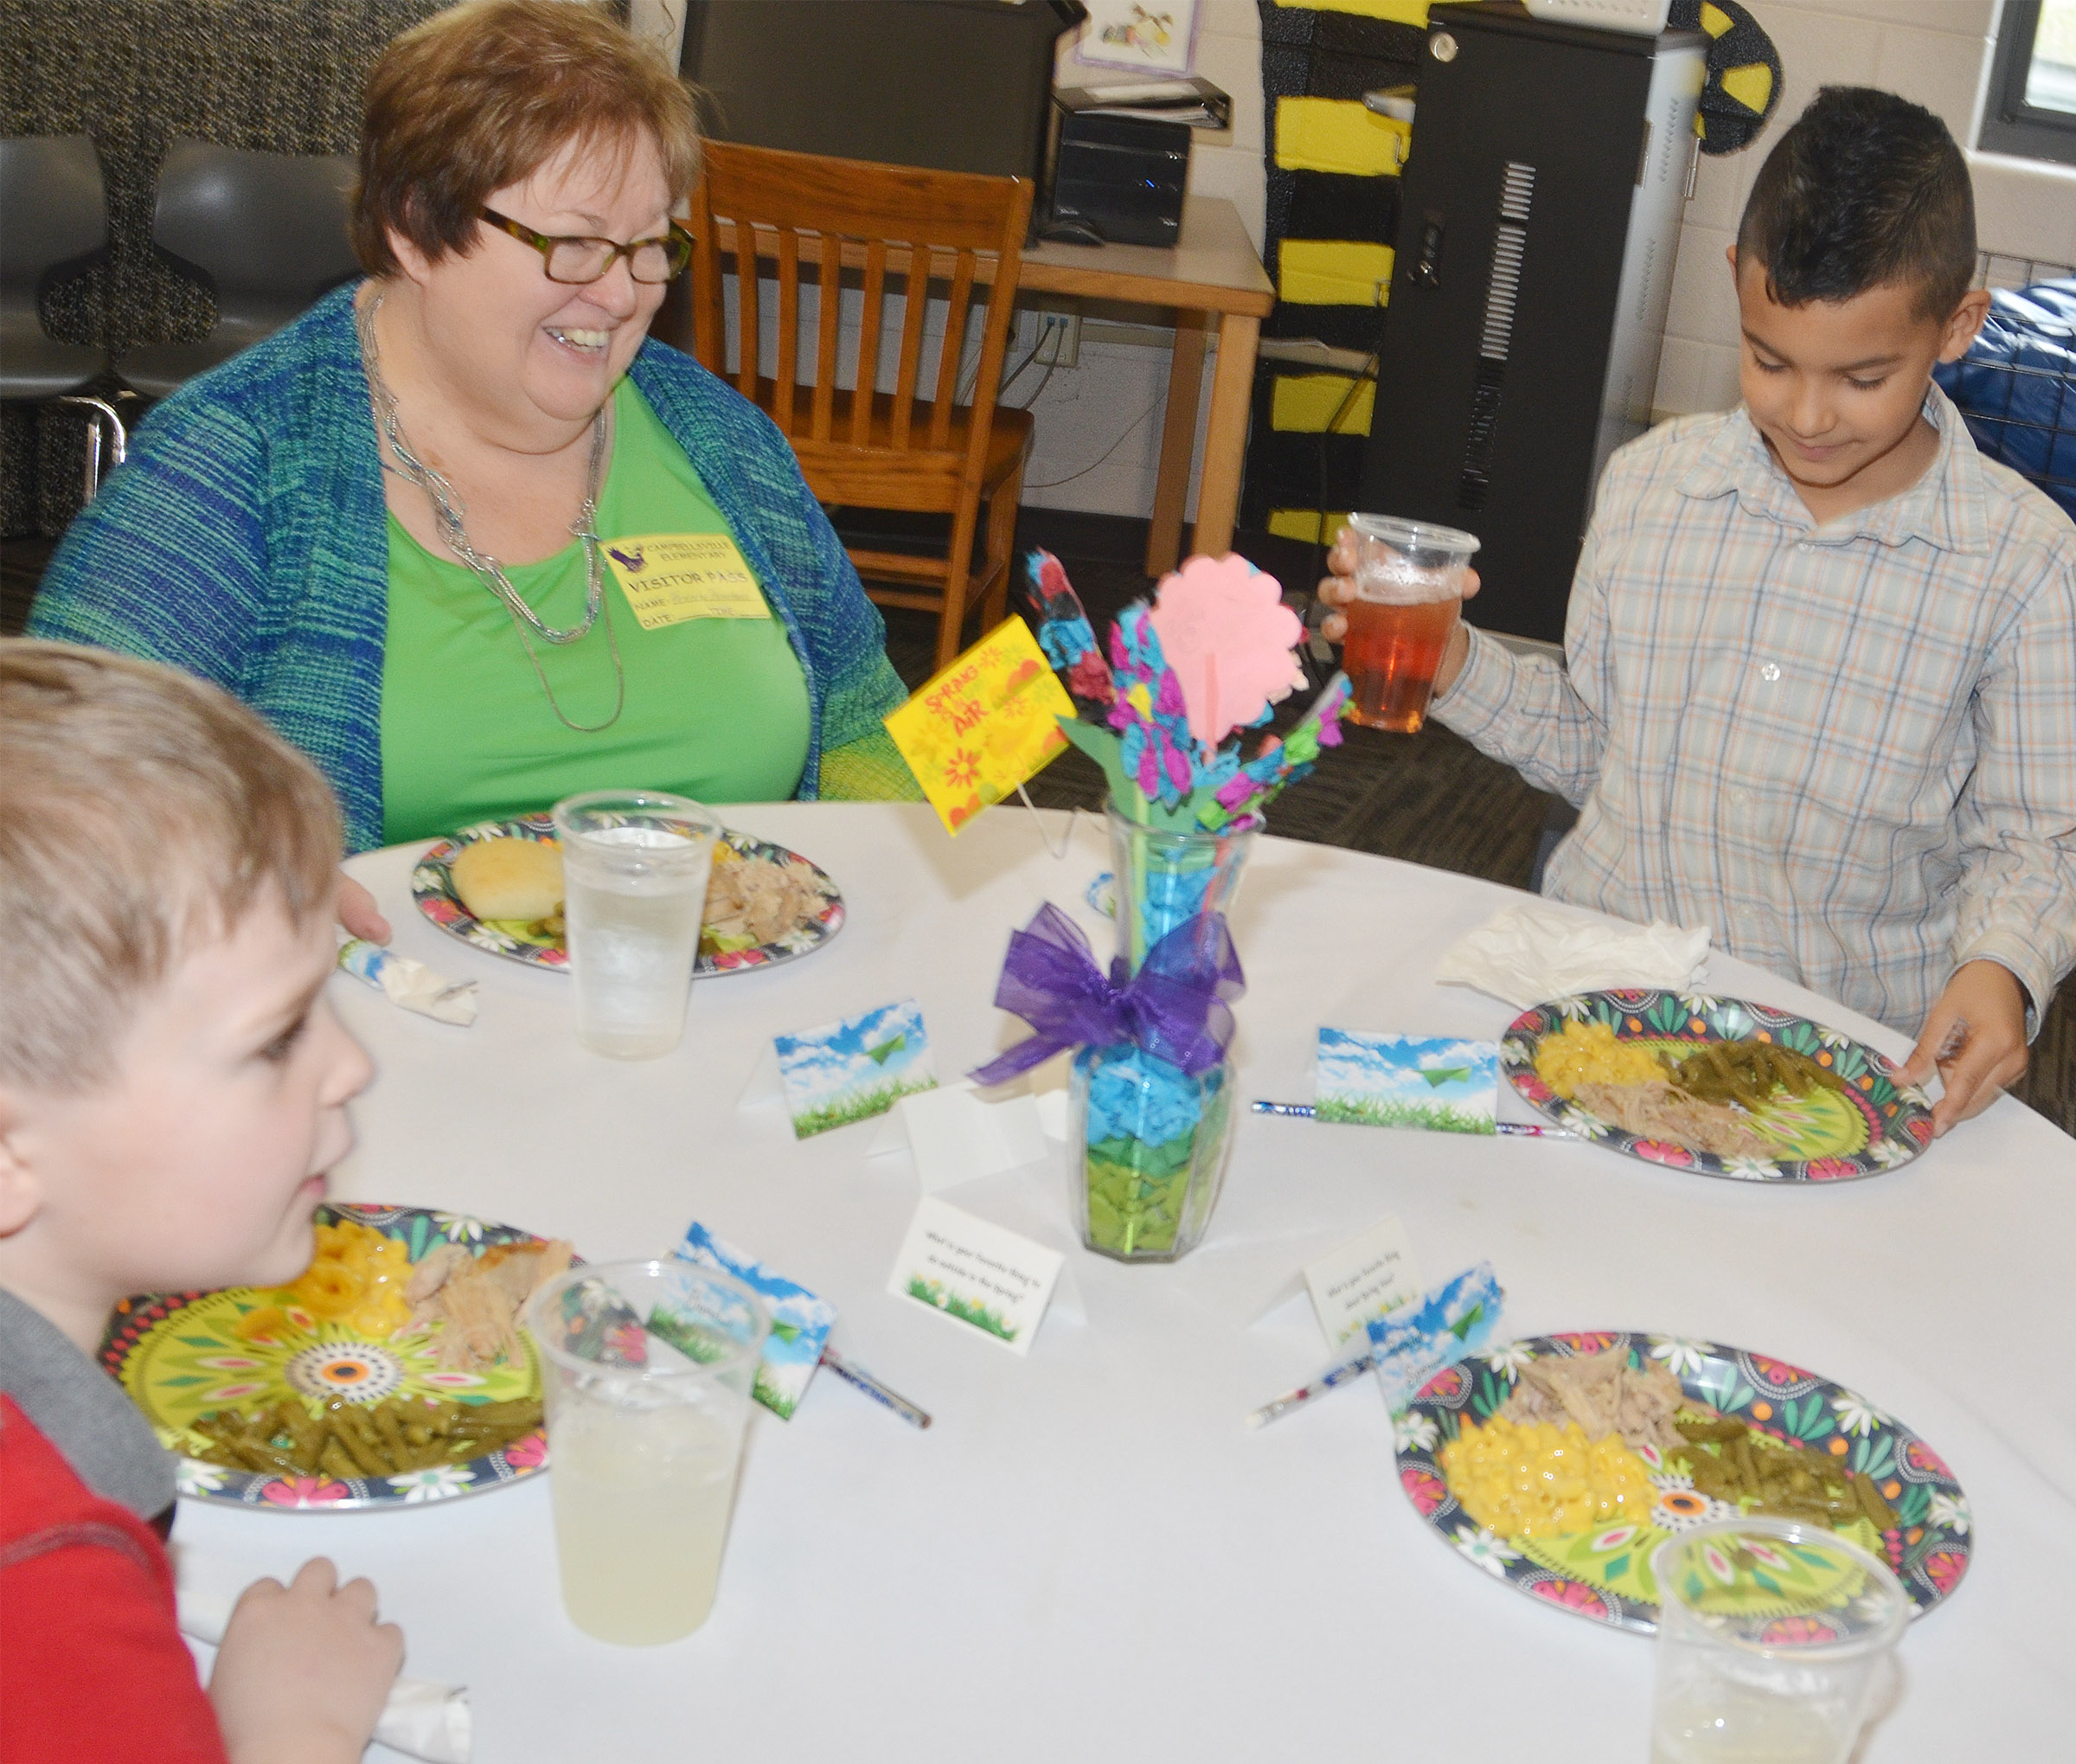 Beverly Rowland, dean and assistant professor in the School of Nursing at Campbellsville University, has lunch with first-graders Karson Burchett, at left, and Rizzo McKenzie.